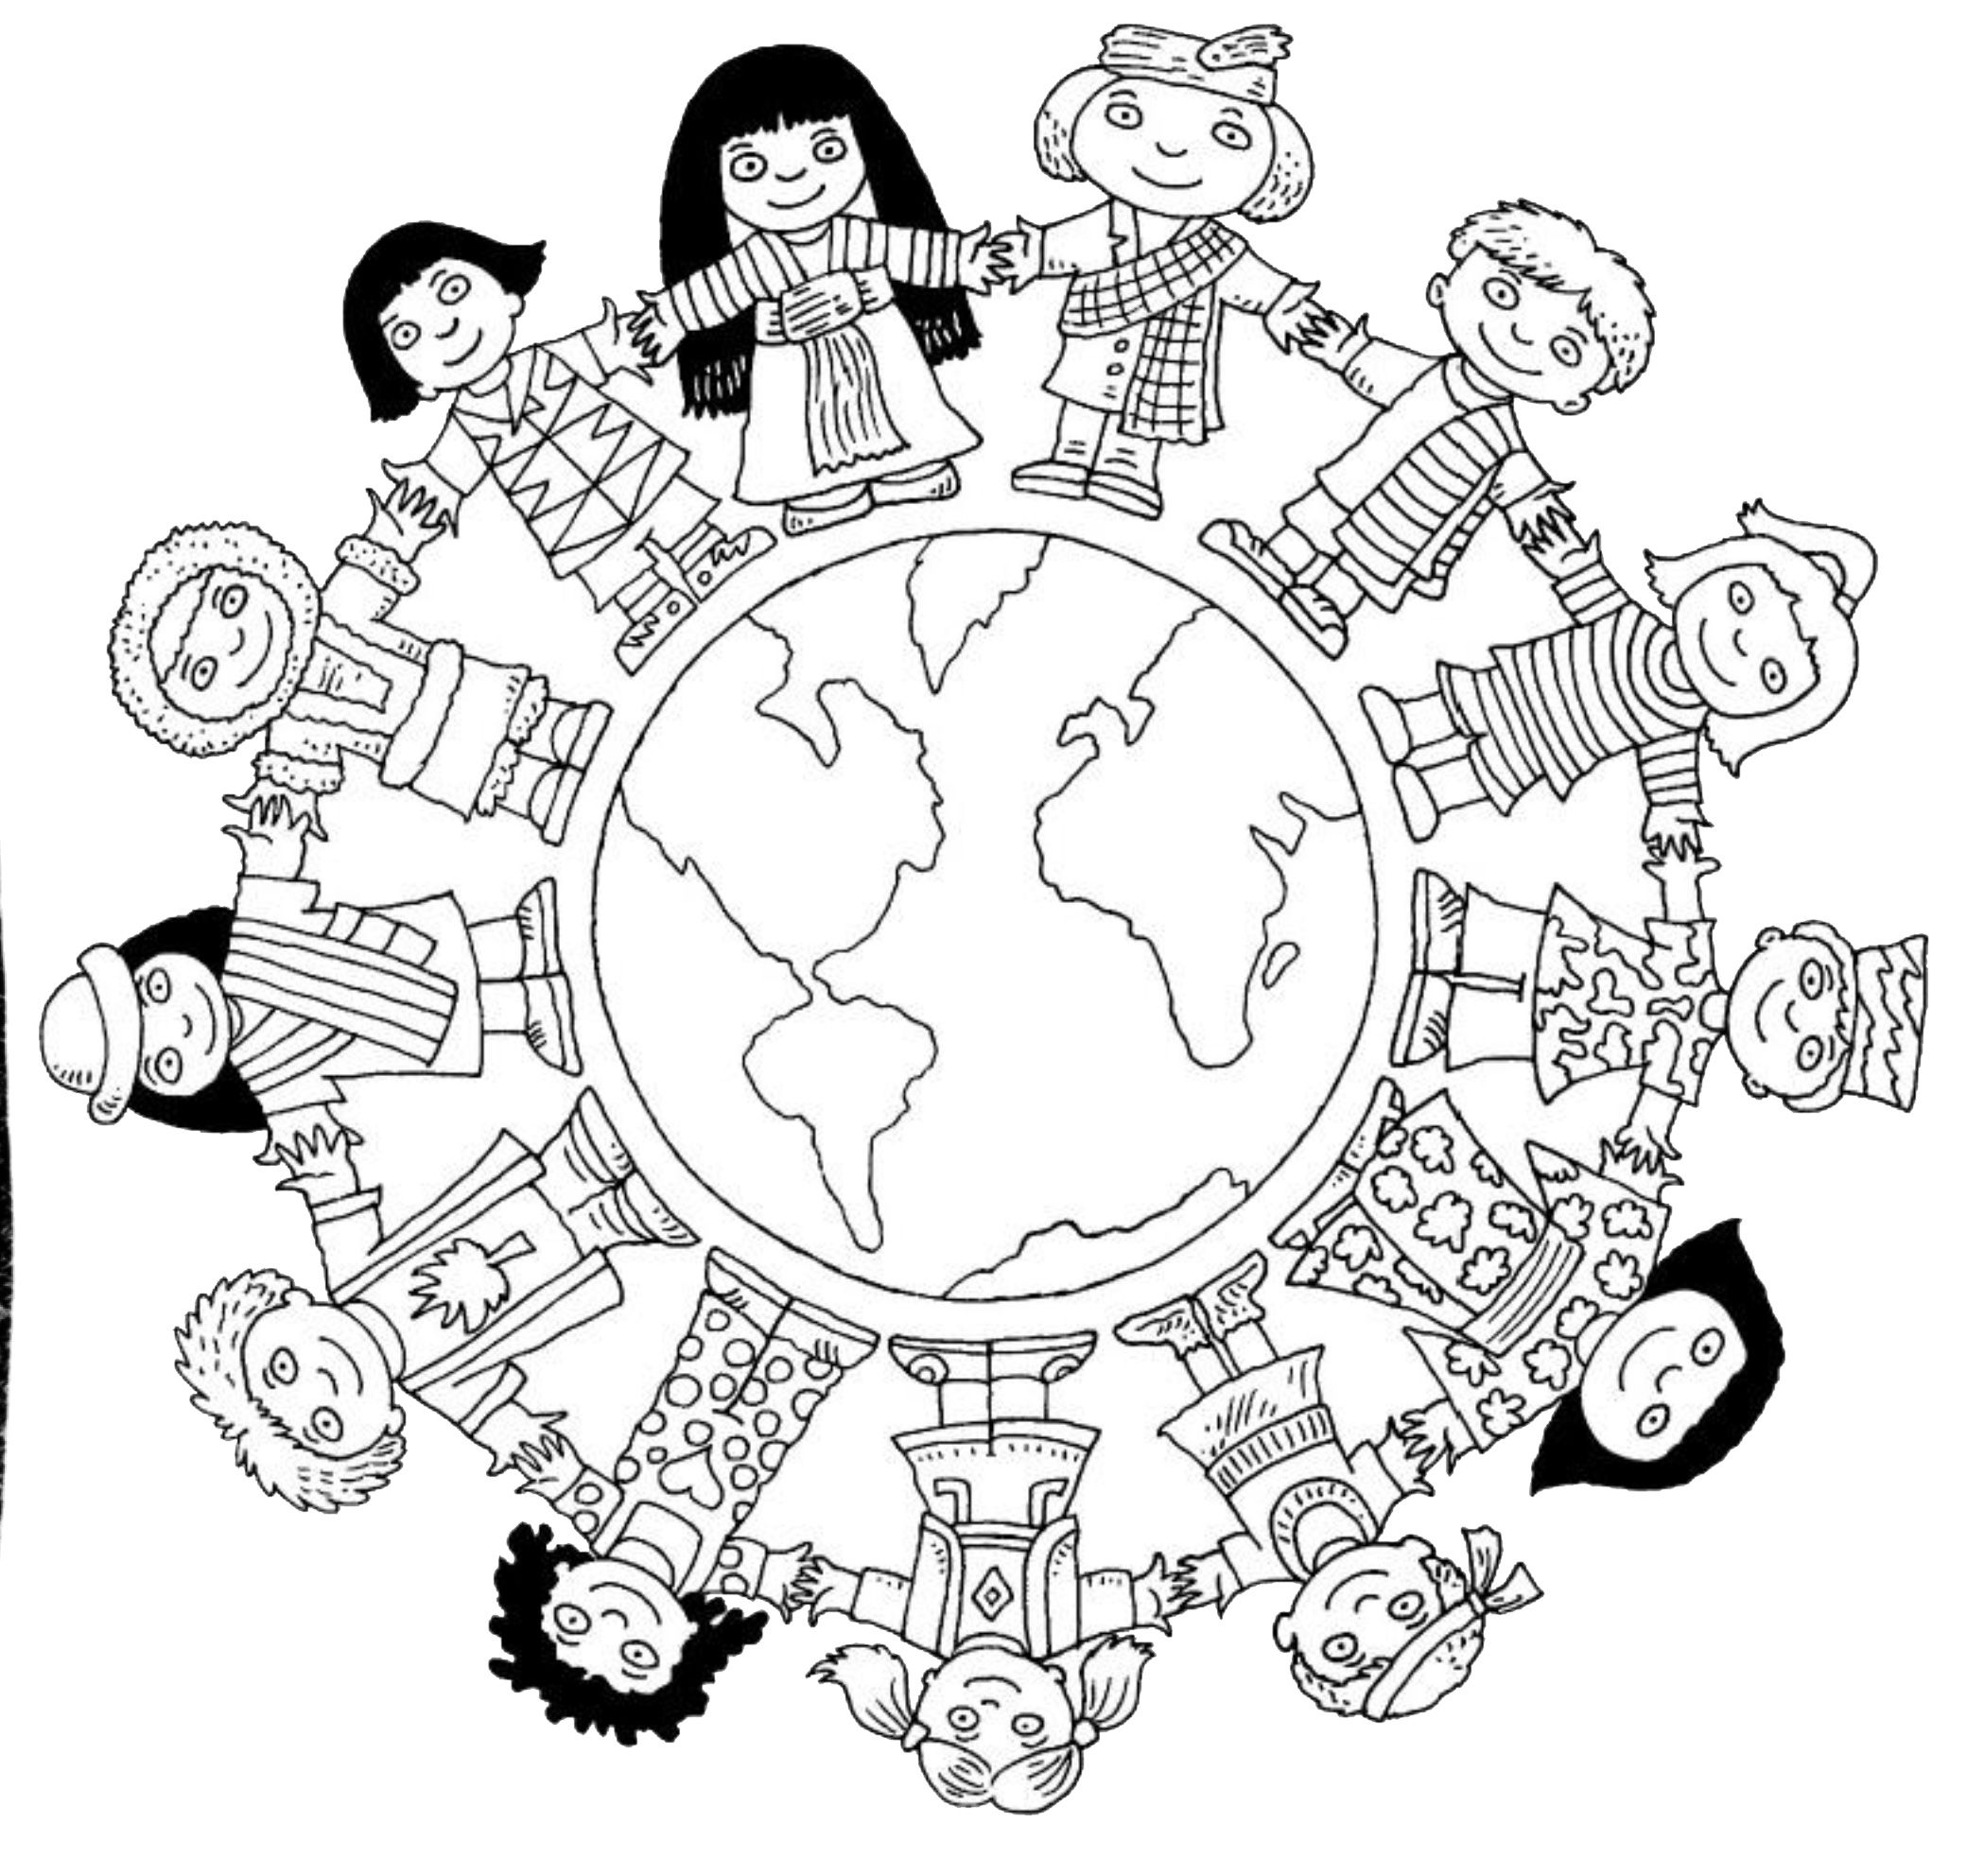 Children around the world coloring page